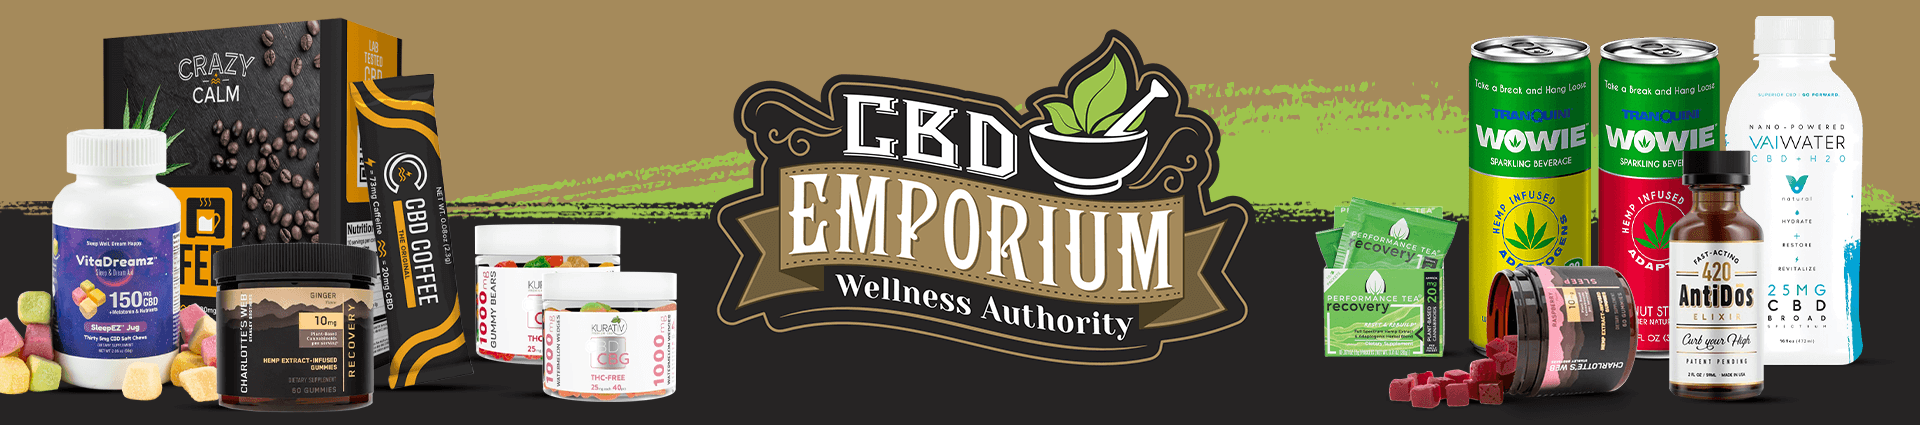 CBD Edibles & Beverages products at CBD Emporium